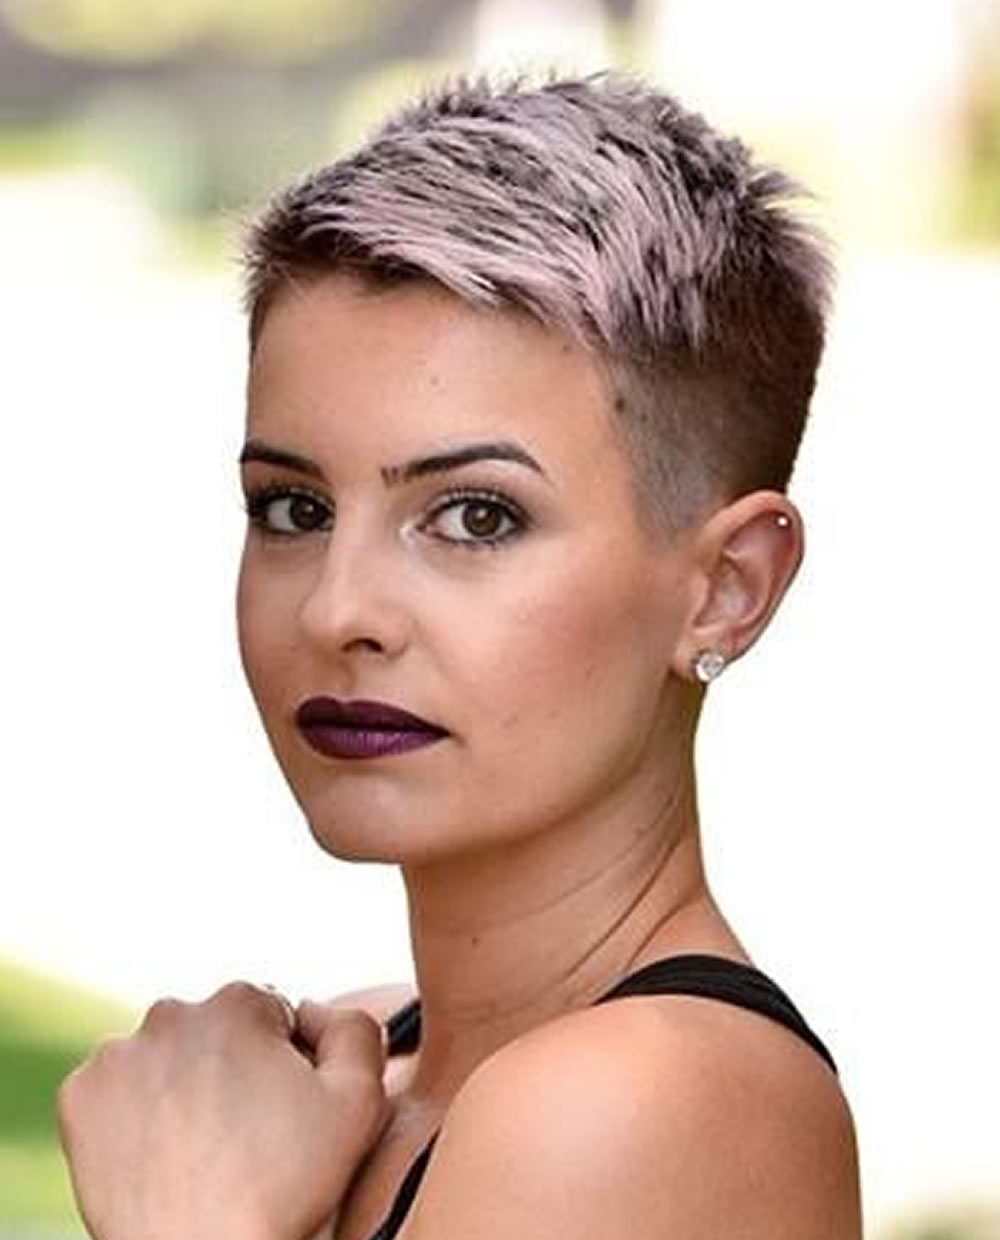 Super short pixie haircut 2019